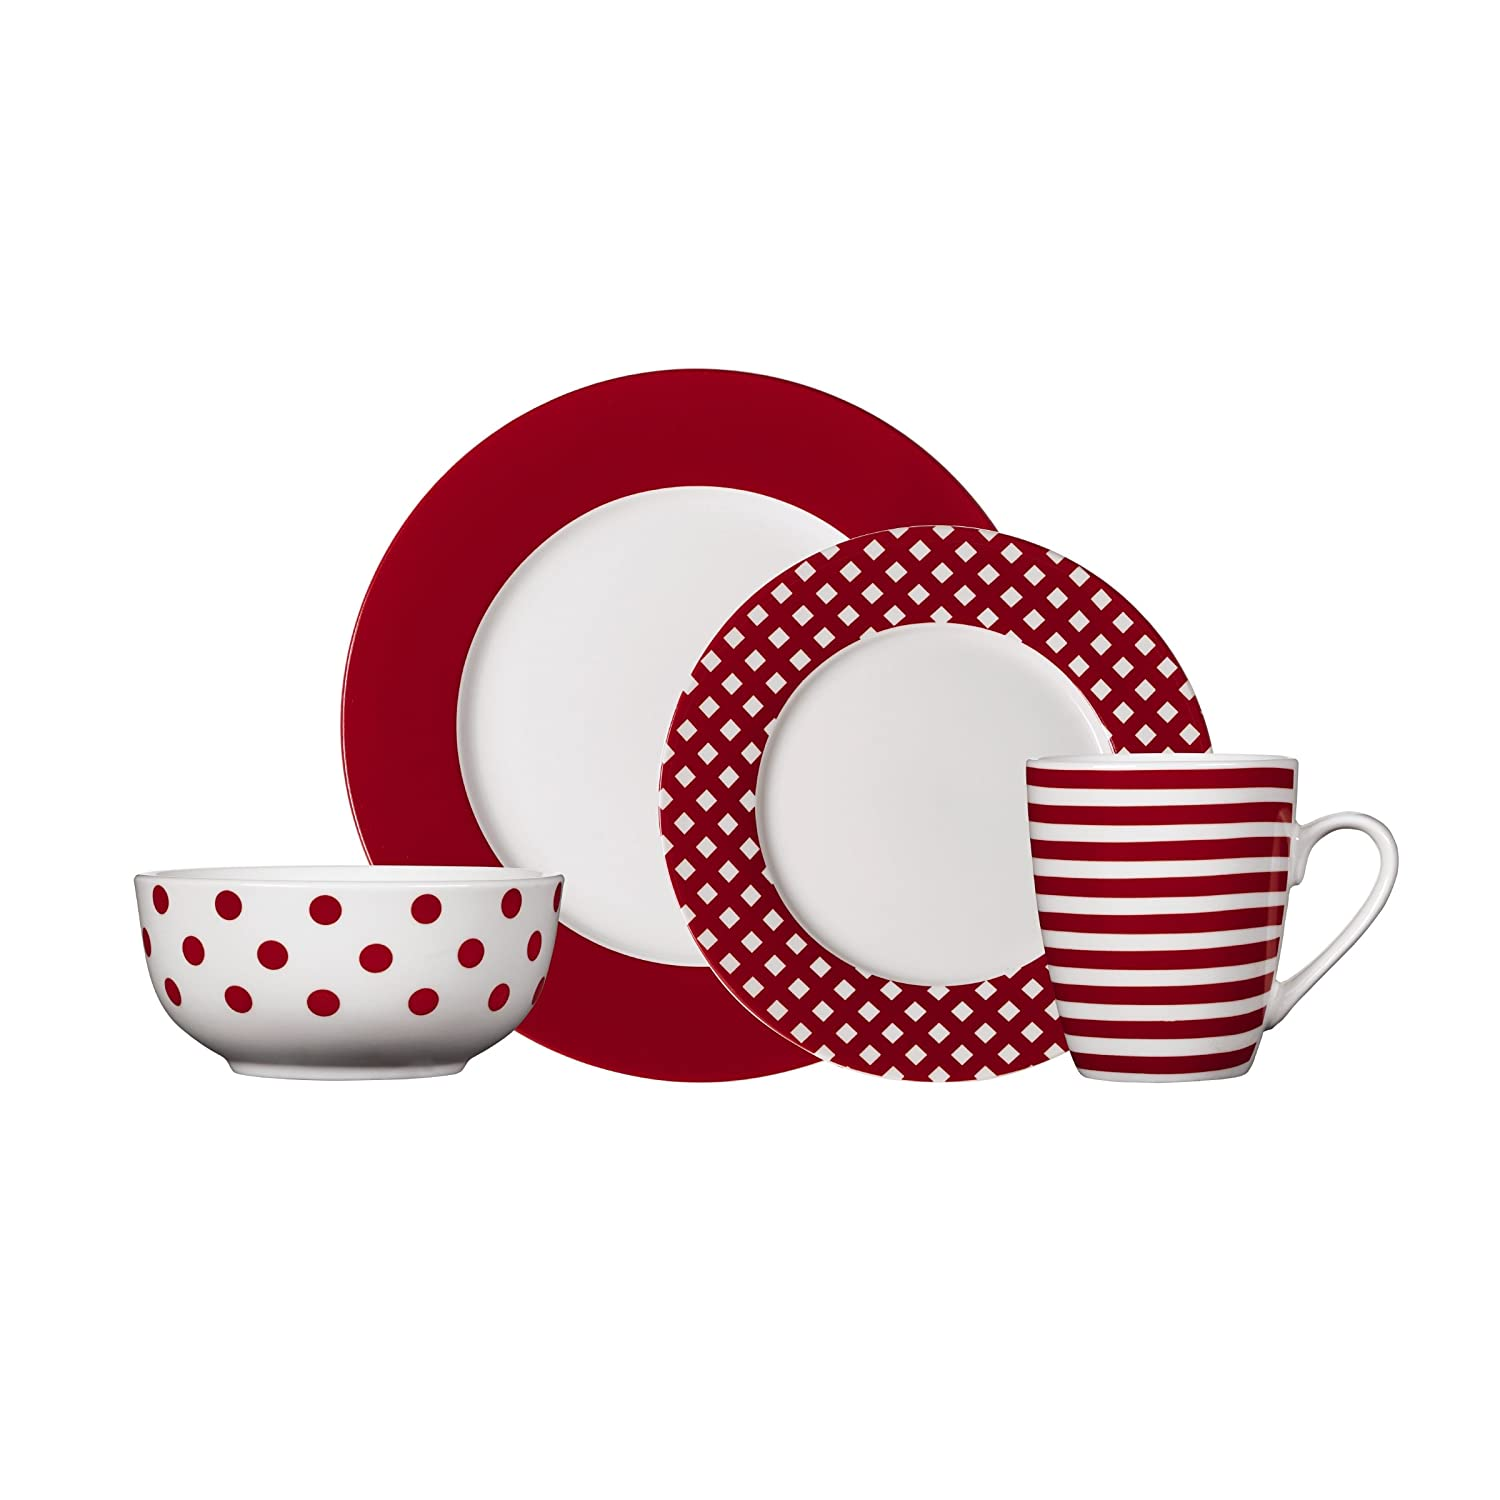 Amazon.com Pfaltzgraff Kenna Red 16-Piece Porcelain Dinnerware Set Service for 4 Kitchen u0026 Dining  sc 1 st  Amazon.com & Amazon.com: Pfaltzgraff Kenna Red 16-Piece Porcelain Dinnerware Set ...